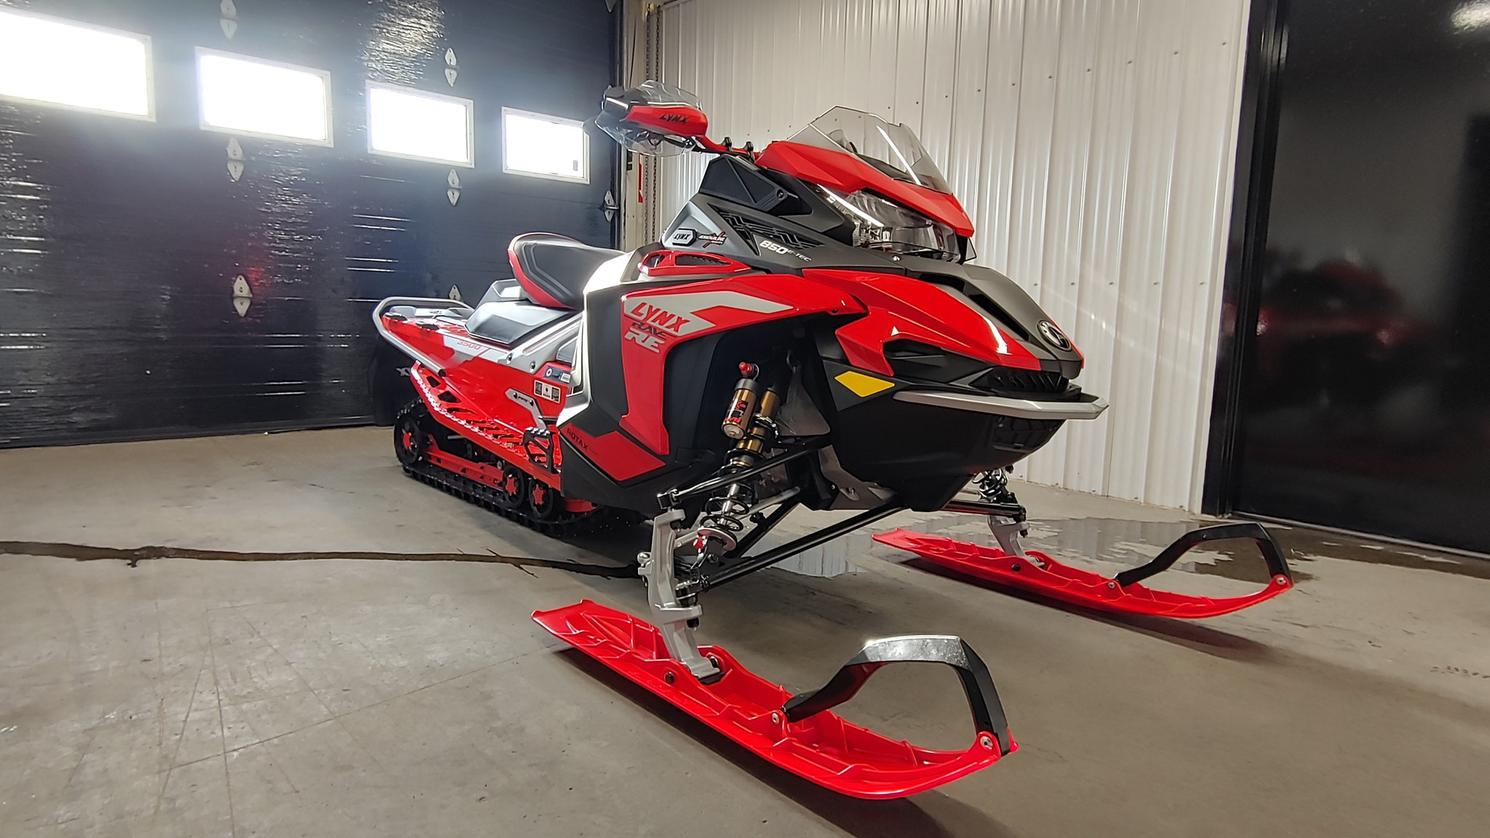 2022 Ski-Doo backcountry x 850 LYNX RAVE RE 3500